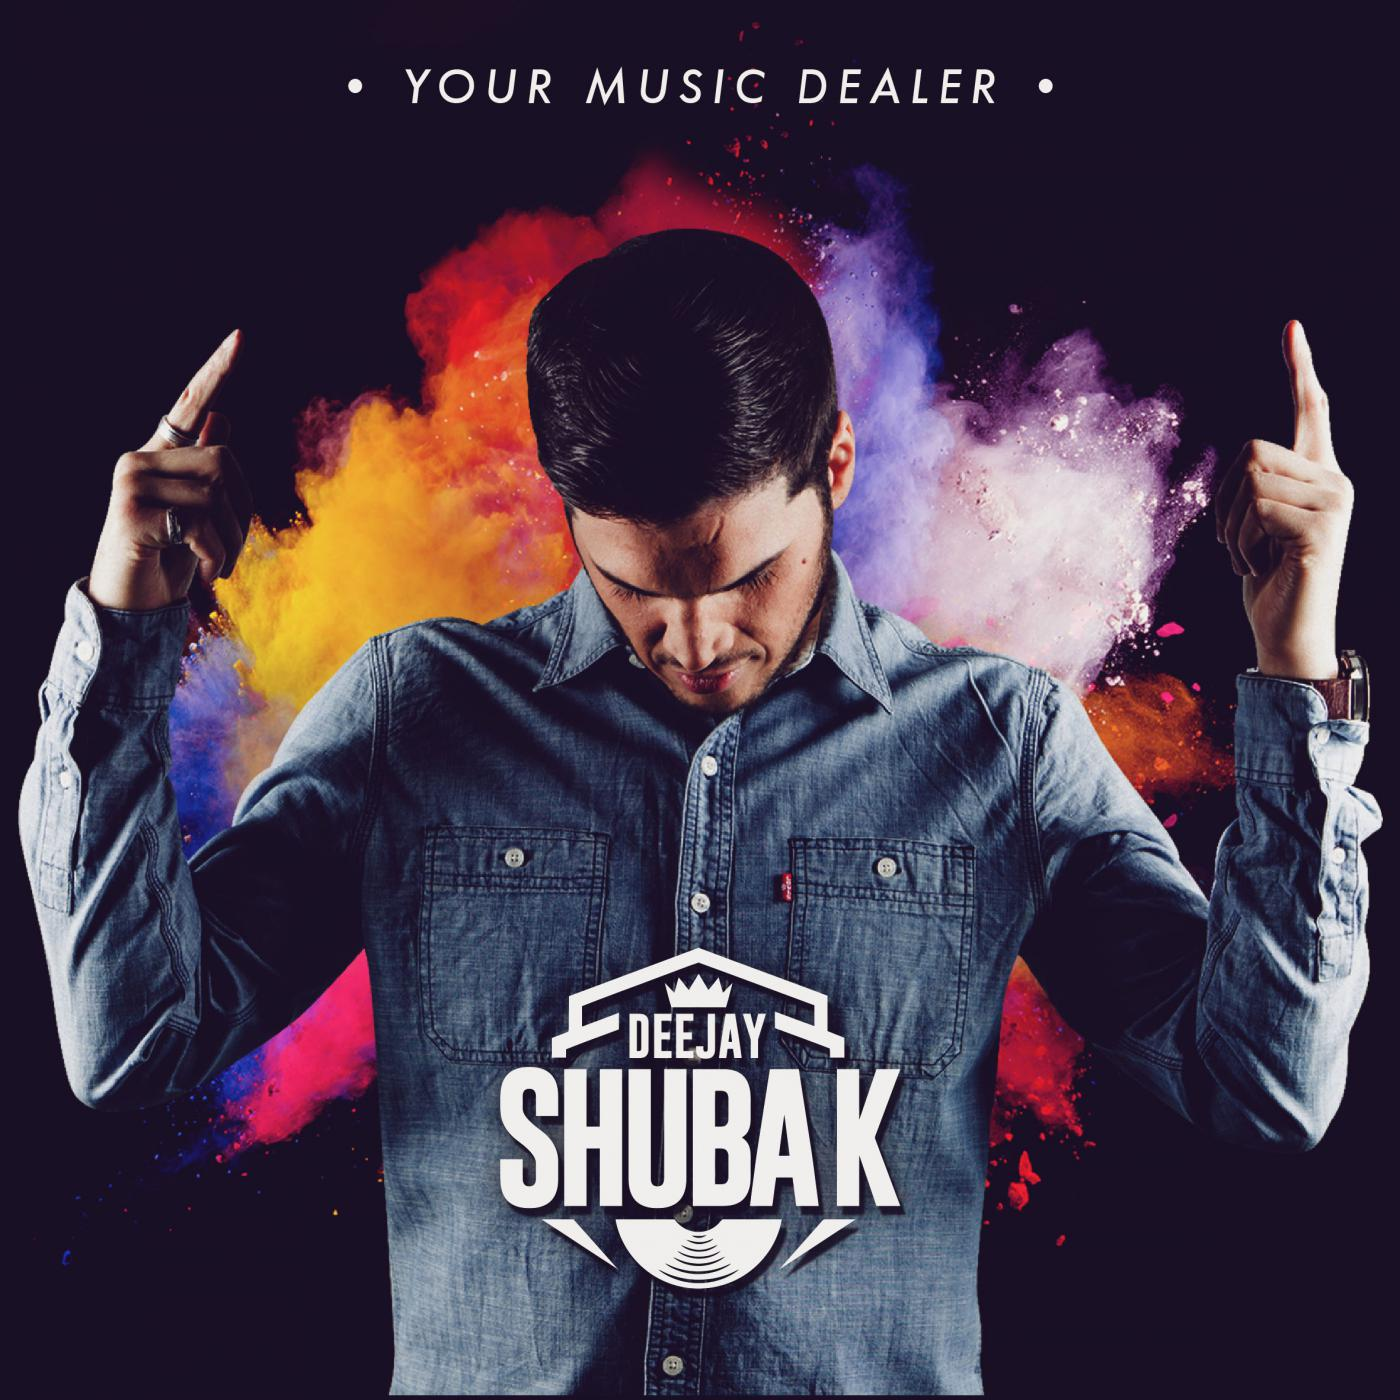 YOUR MUSIC DEALER